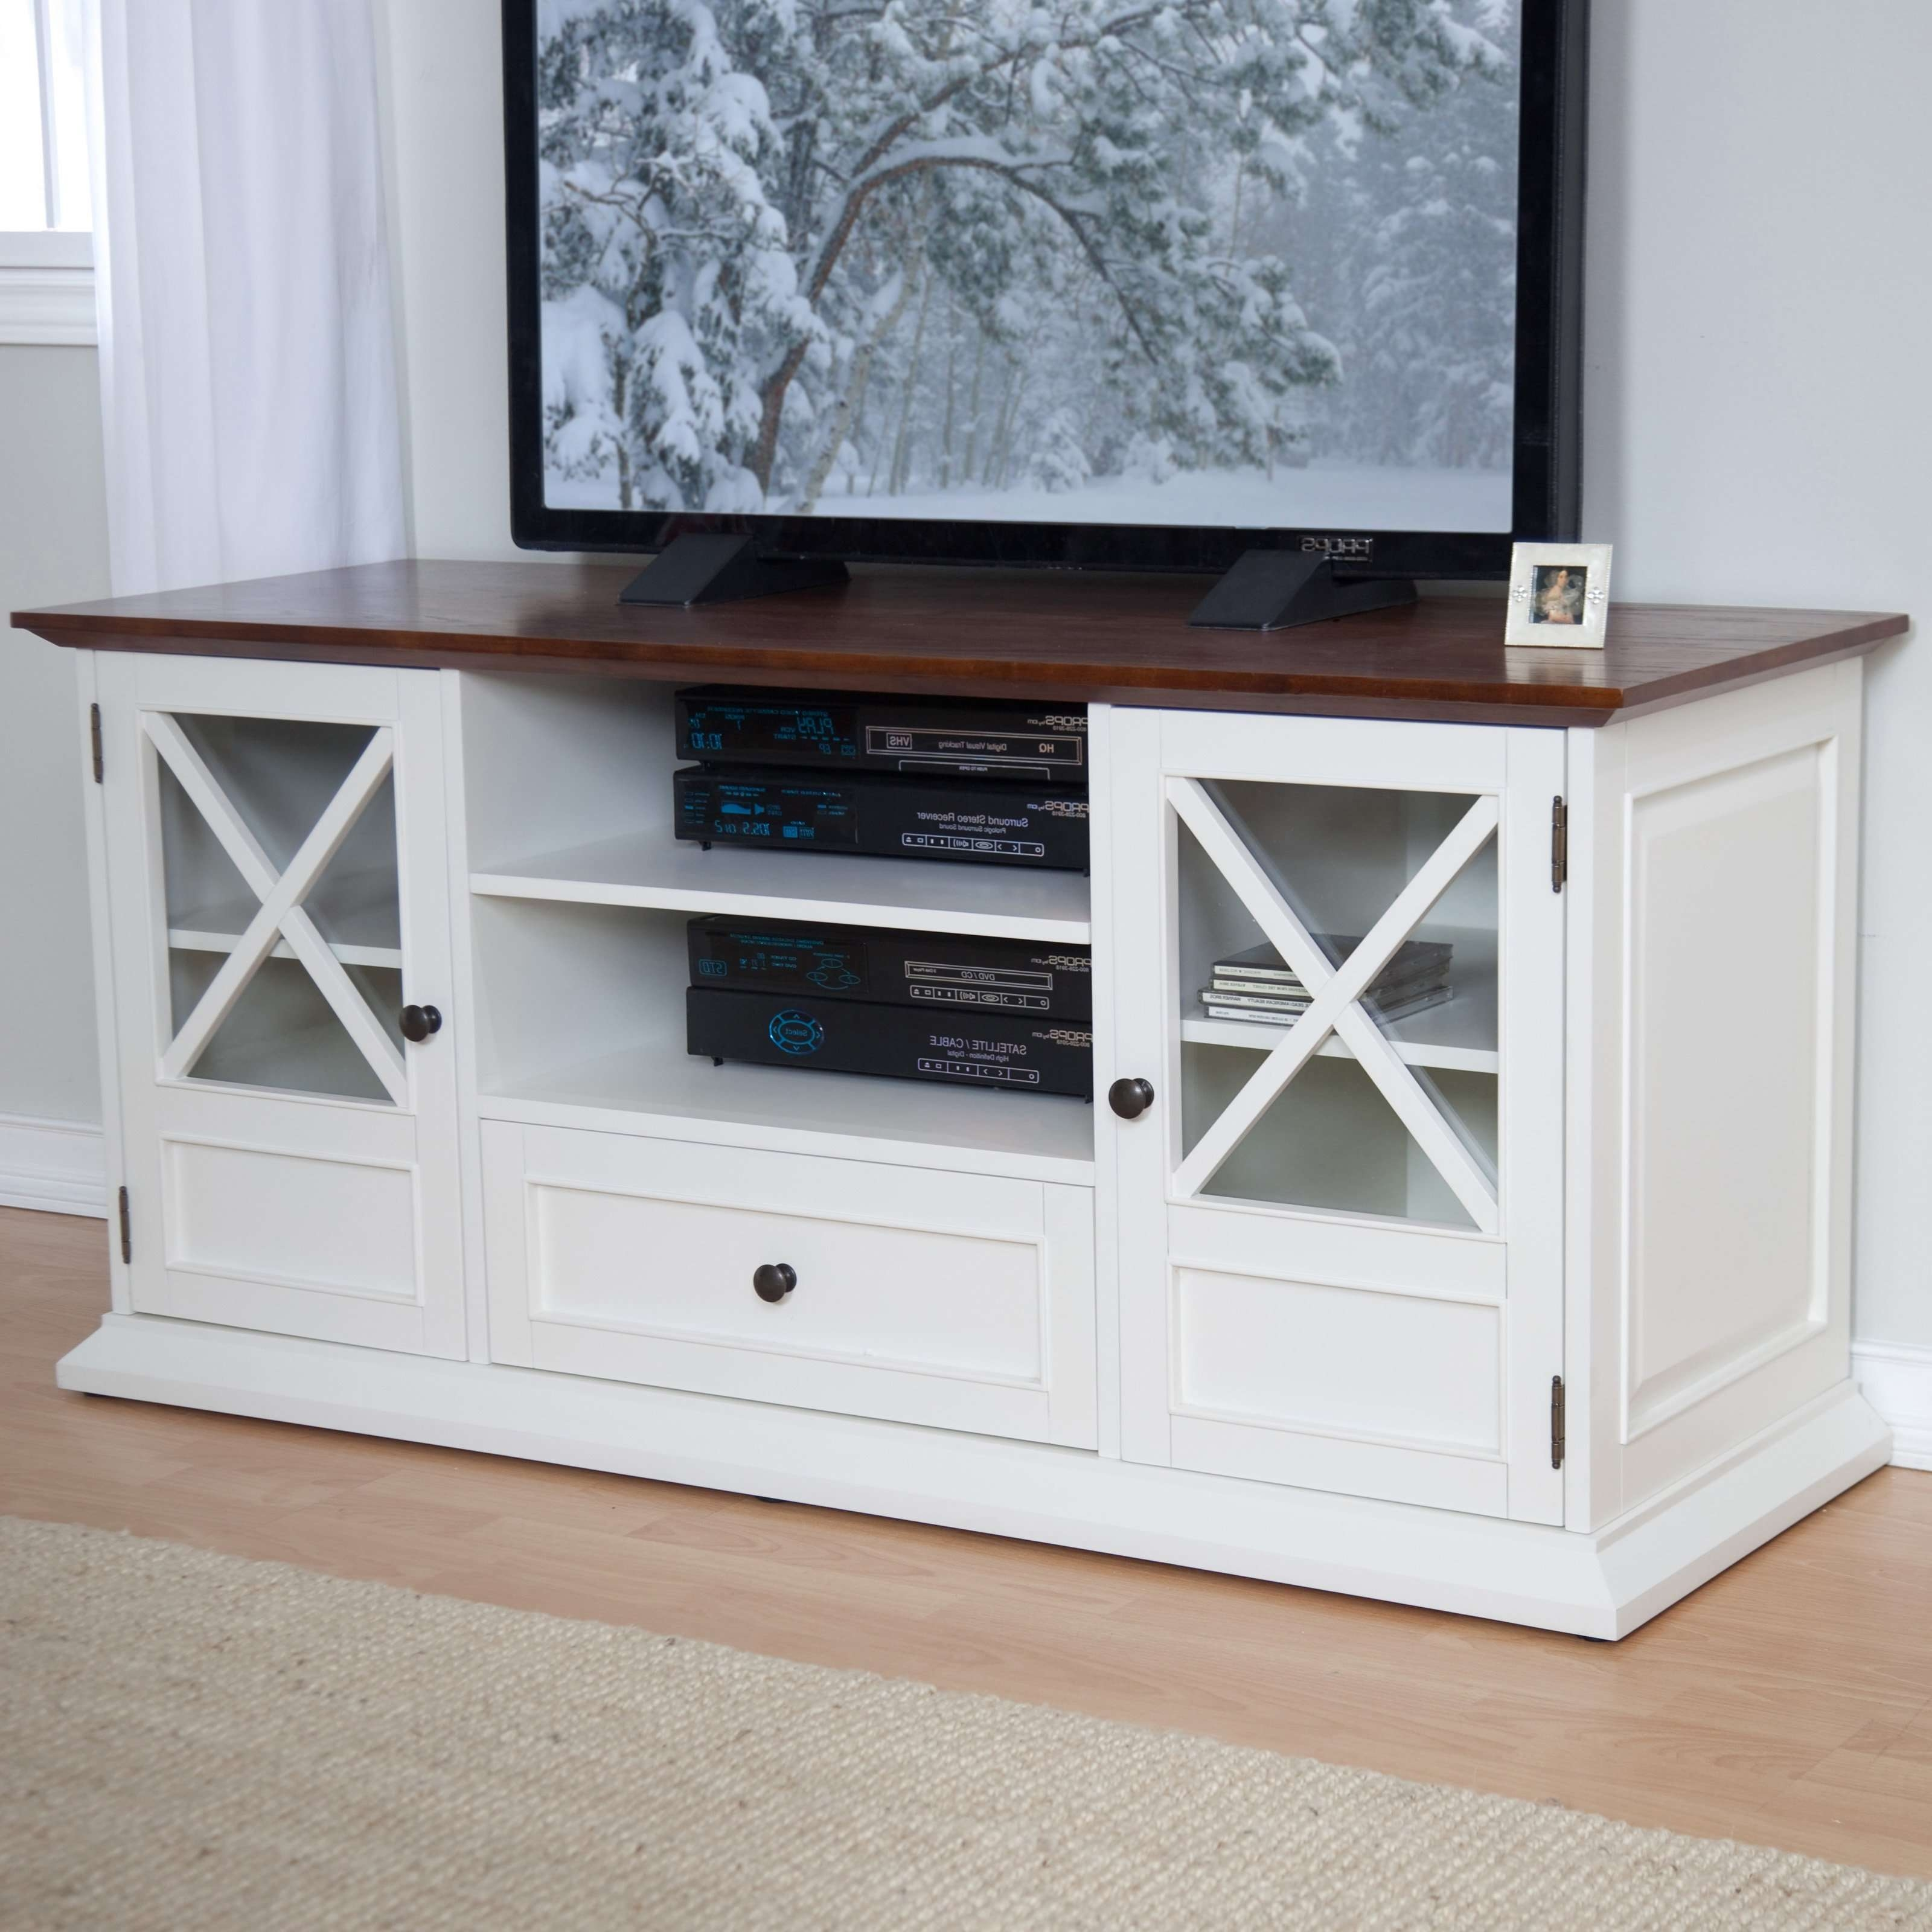 Belham Living Hampton Tv Stand – White/oak | Hayneedle Pertaining To Rustic 60 Inch Tv Stands (View 4 of 15)